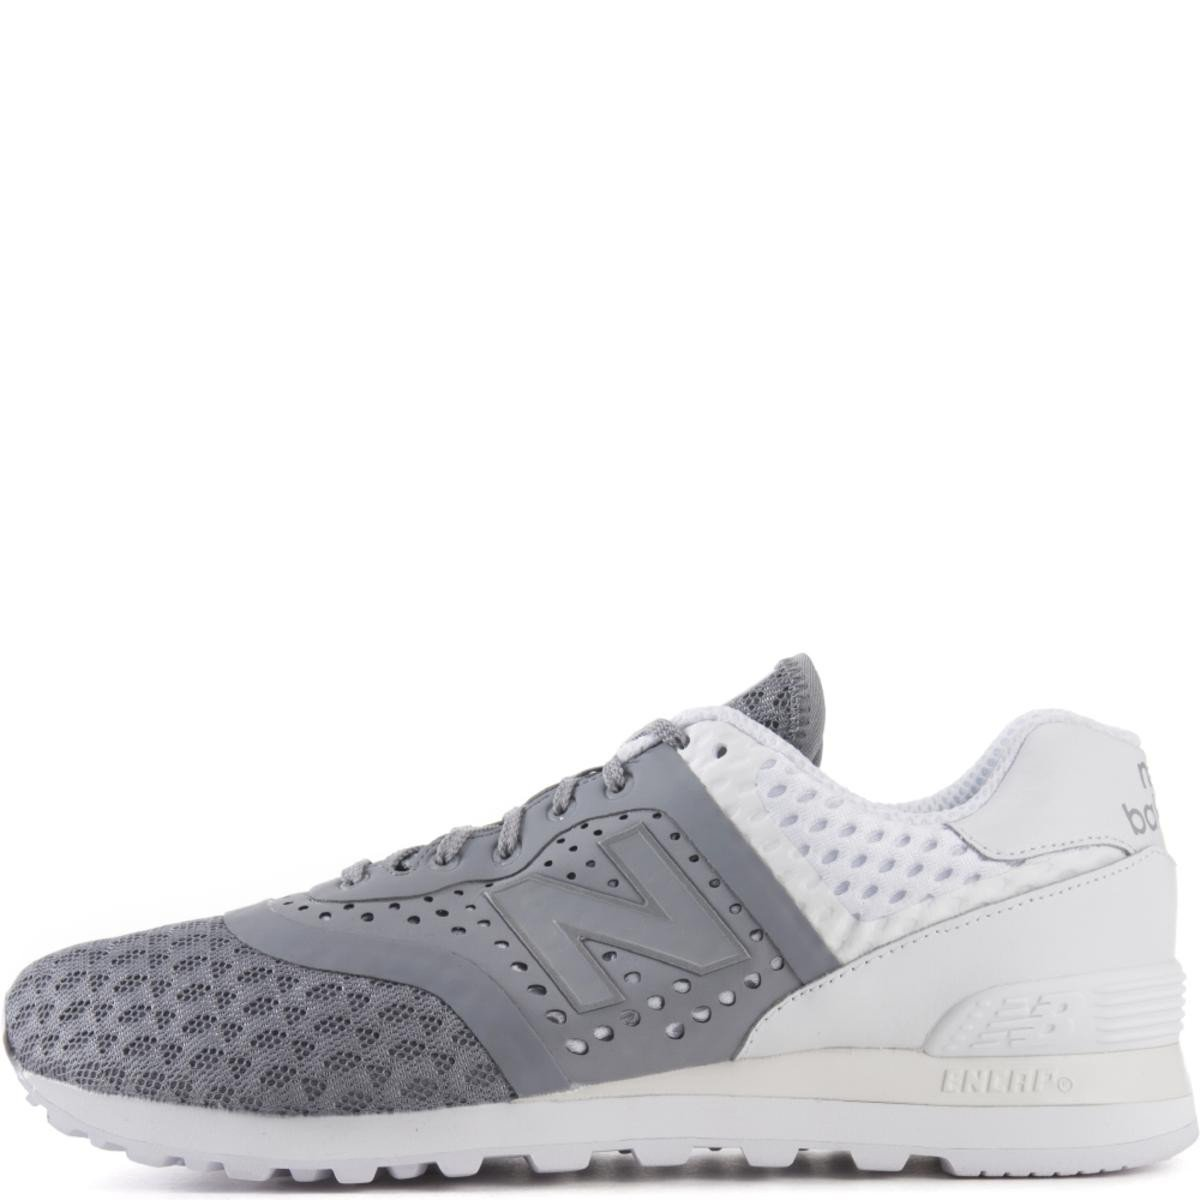 New Balance for Men: 574 Re-Engineered Breathe Grey Sneakers